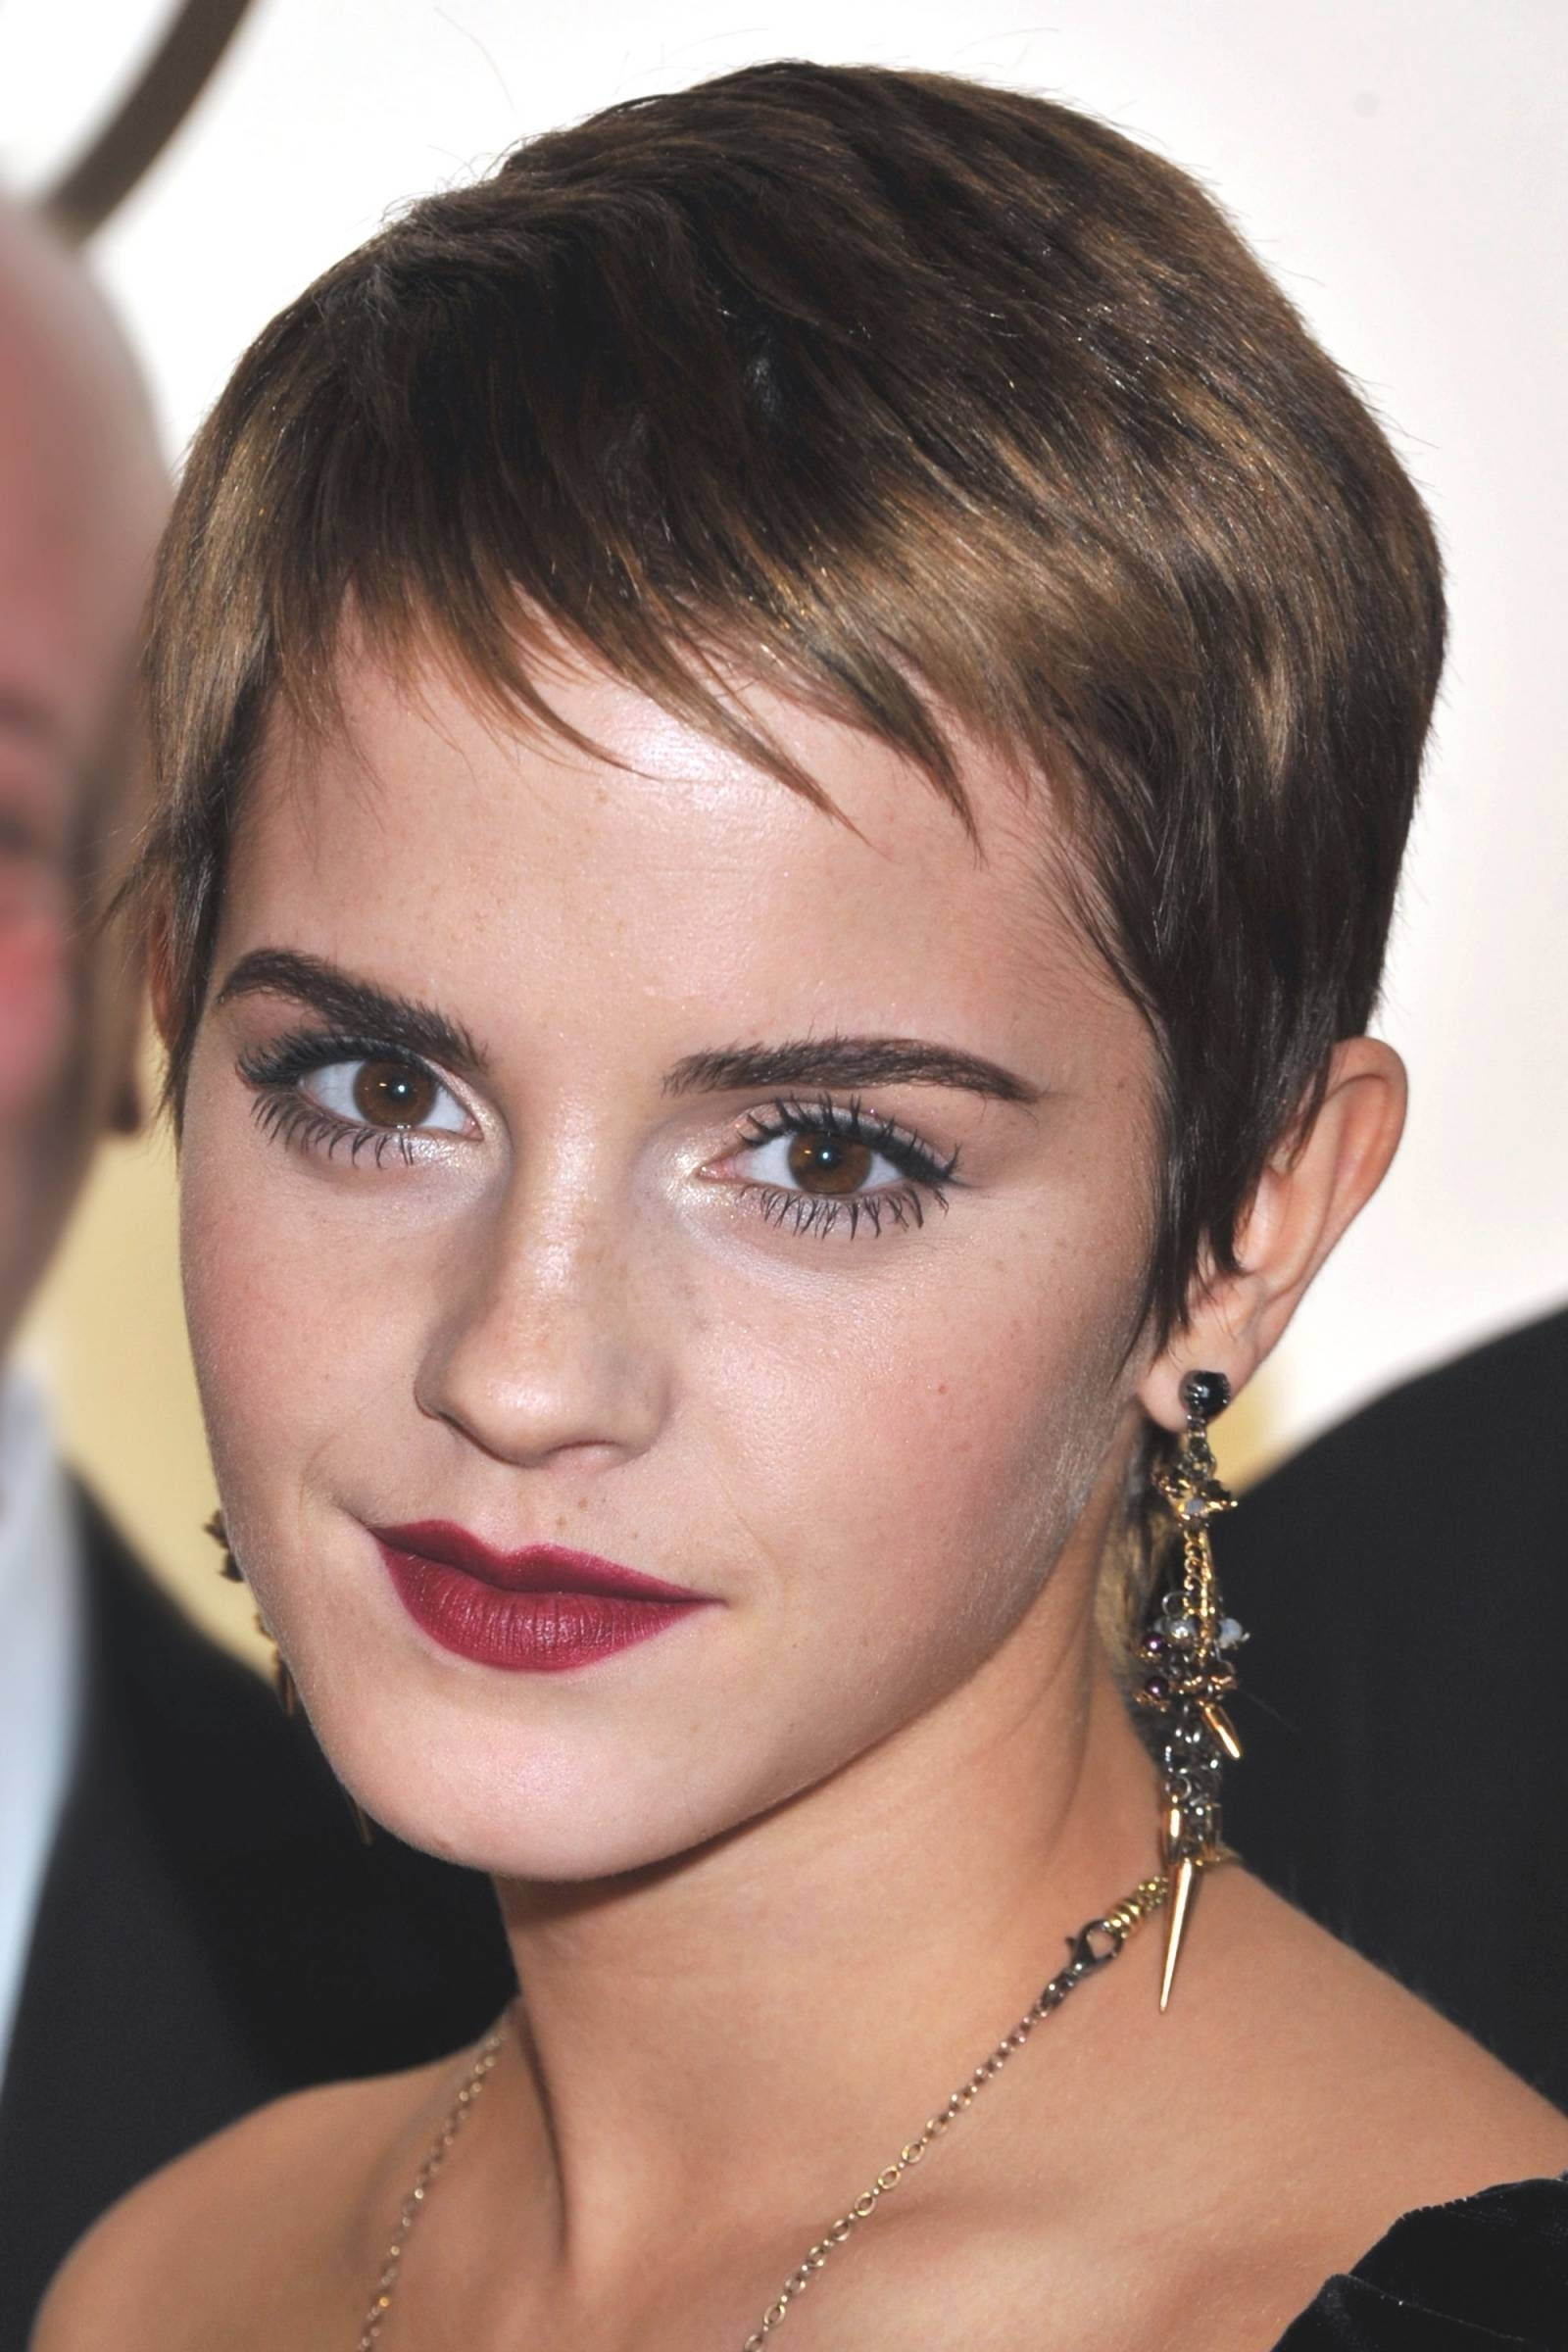 Pixie Haircut Long Bangs 40+ Pixie Cuts We Love For 2017 – Short With Regard To Most Up To Date Pixie Hairstyles Without Bangs (View 3 of 15)